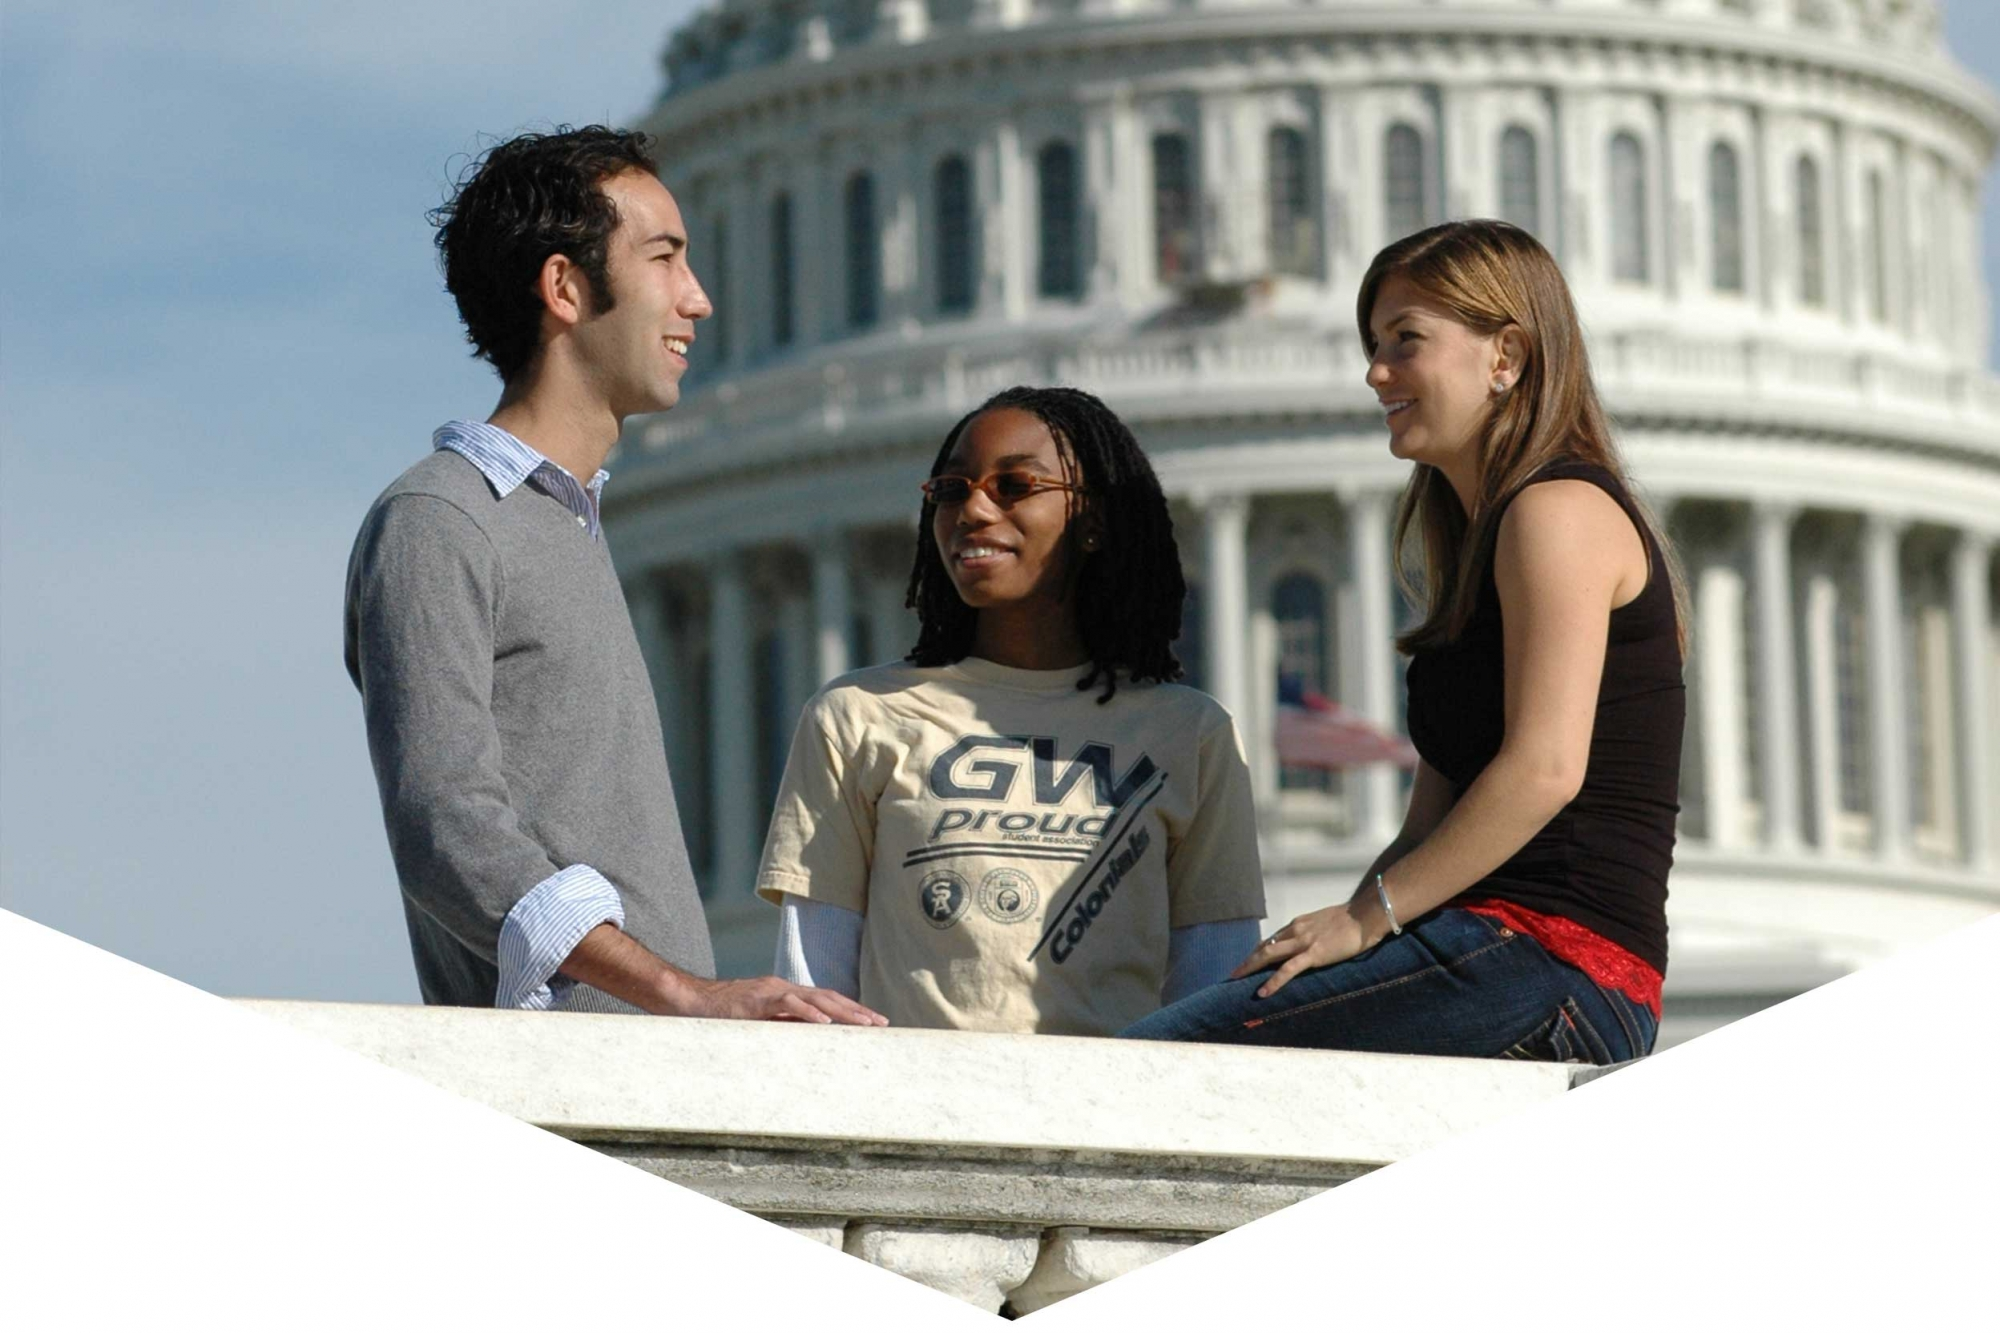 Three students talking with the U.S. Capitol Building in the background